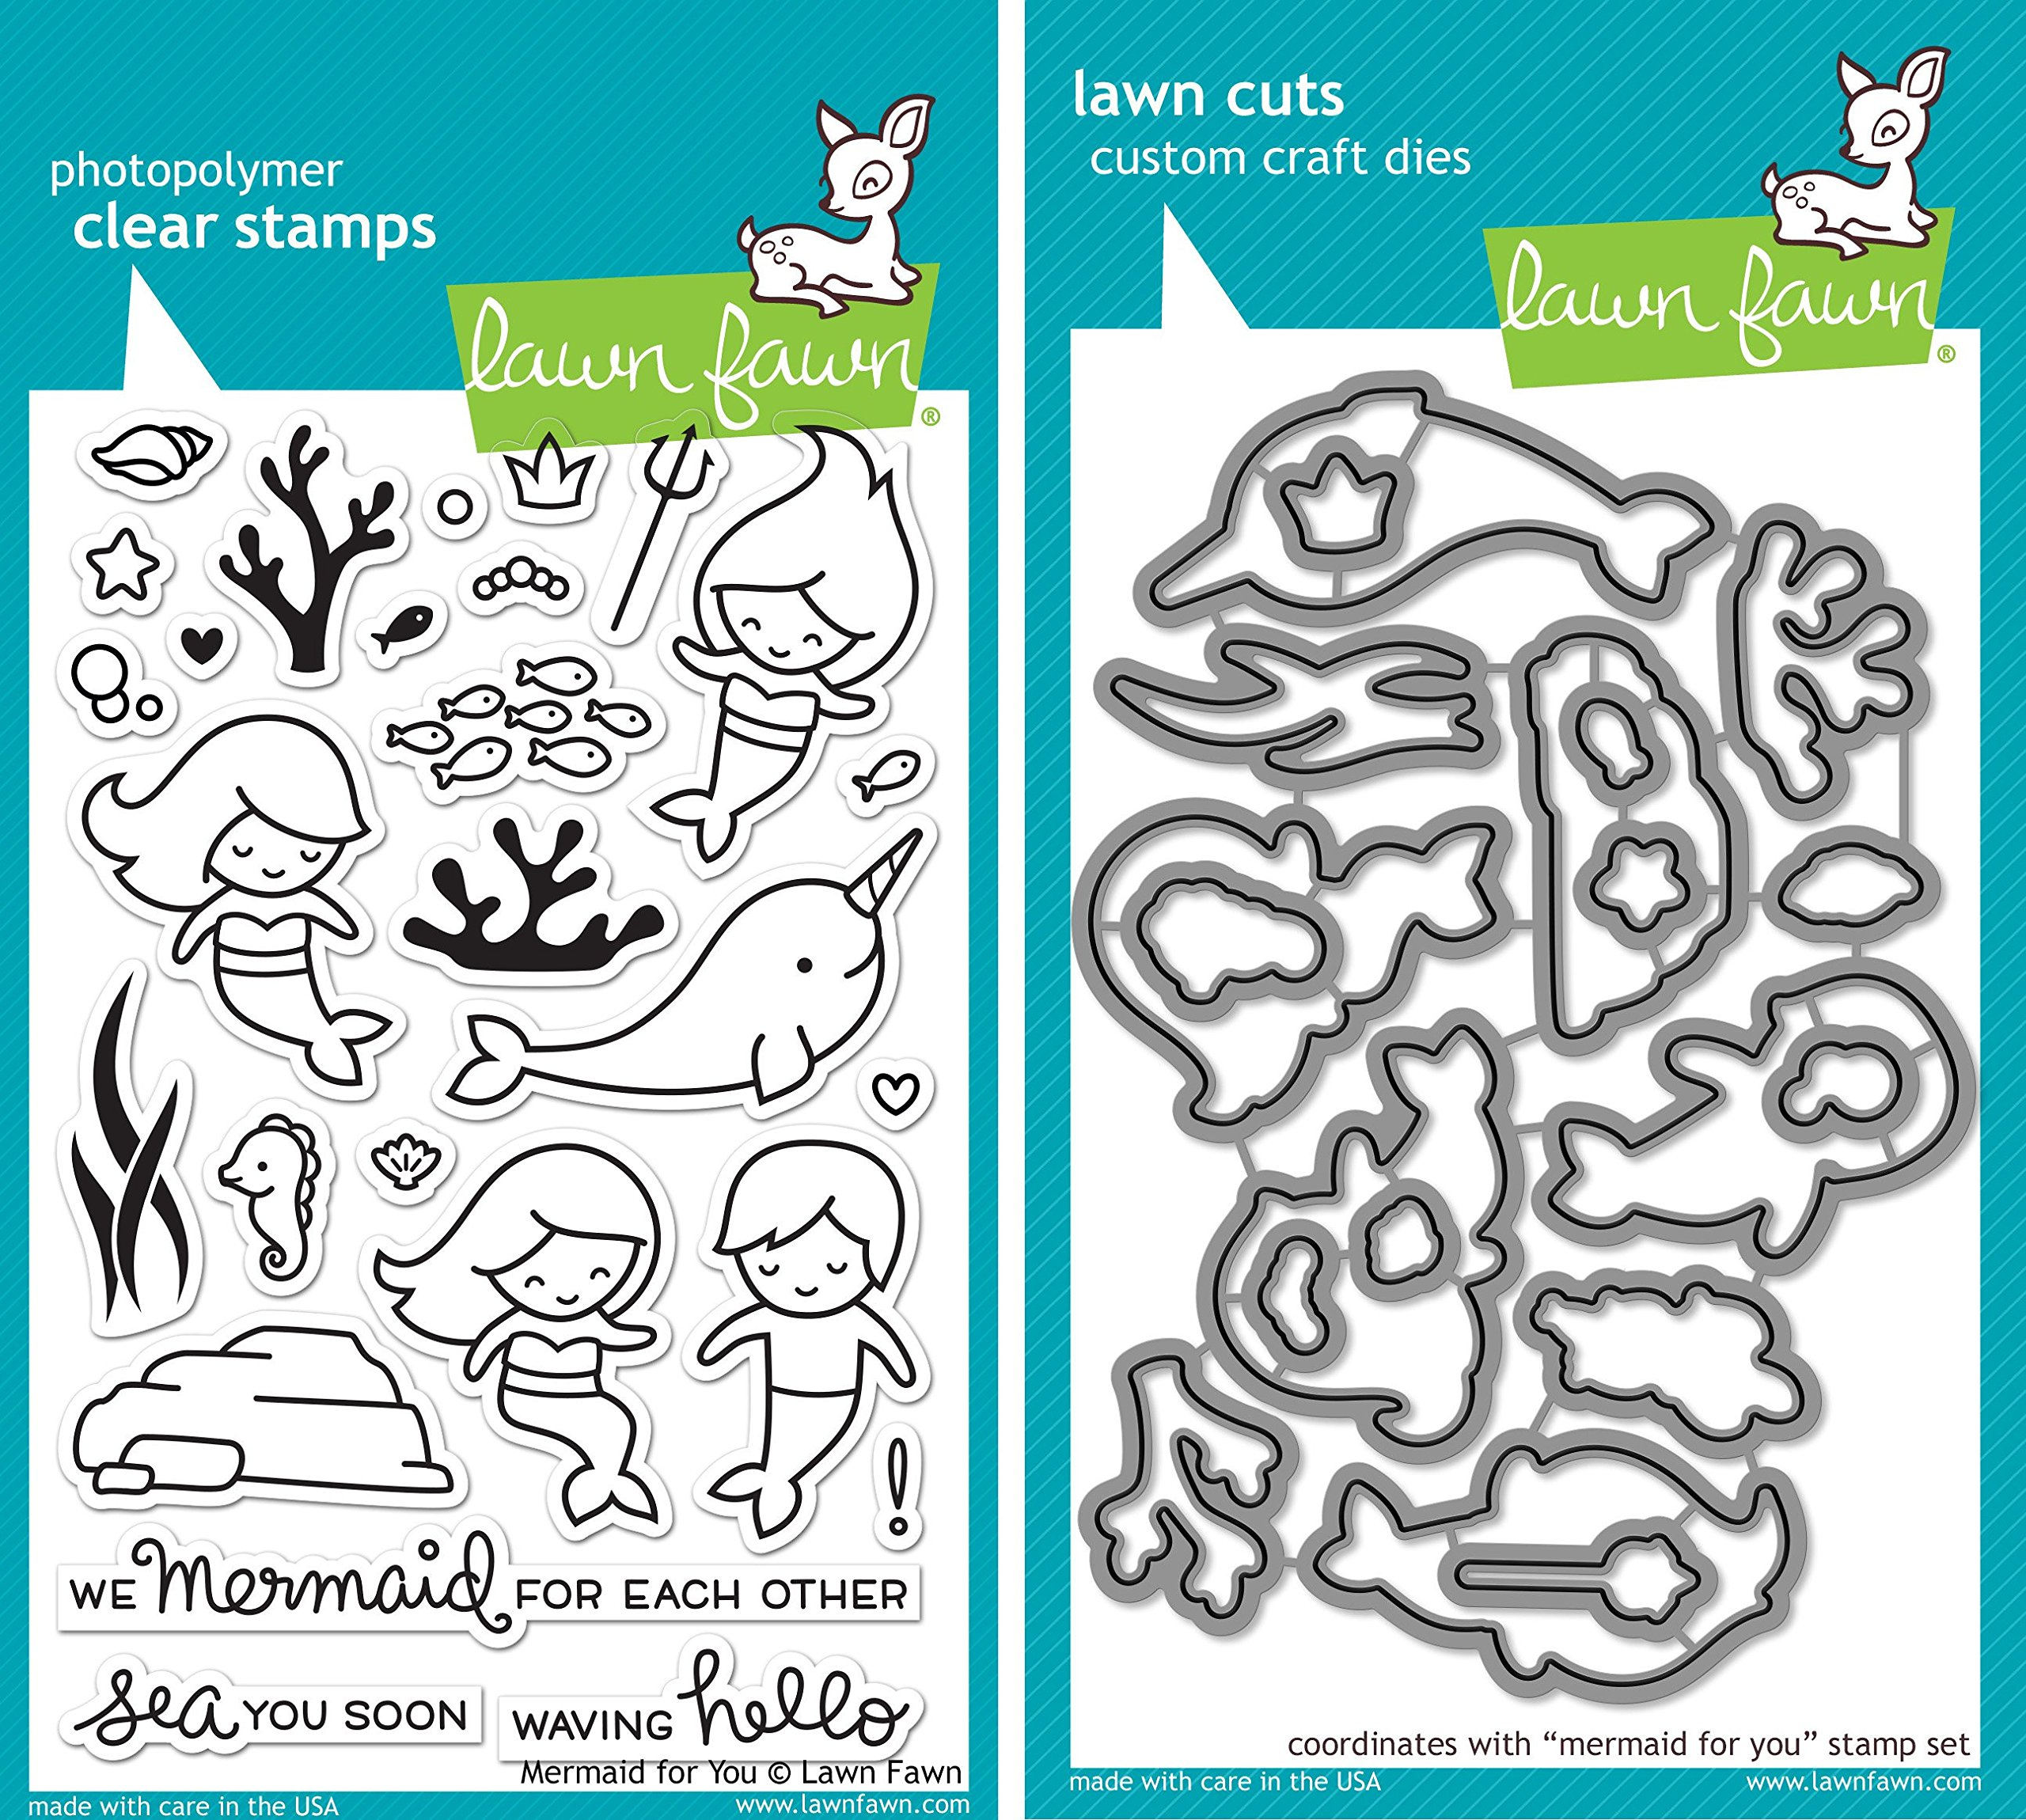 Lawn Fawn Mermaid for You Stamp and Die Set - Two item Bundle